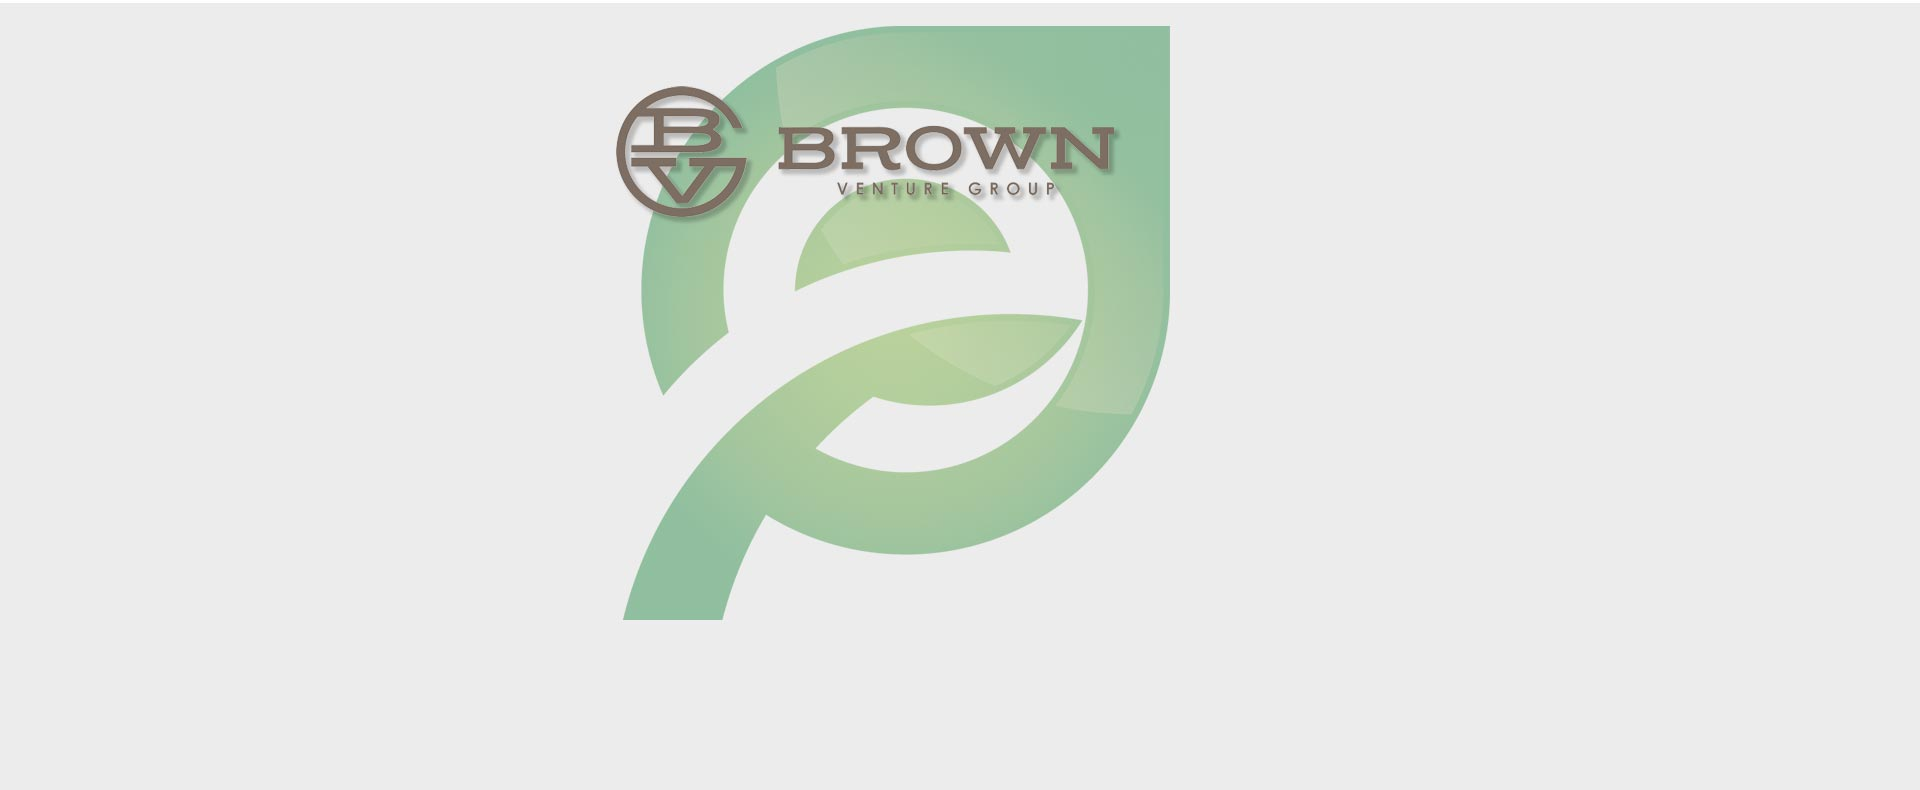 Brown Venture Group, LLC